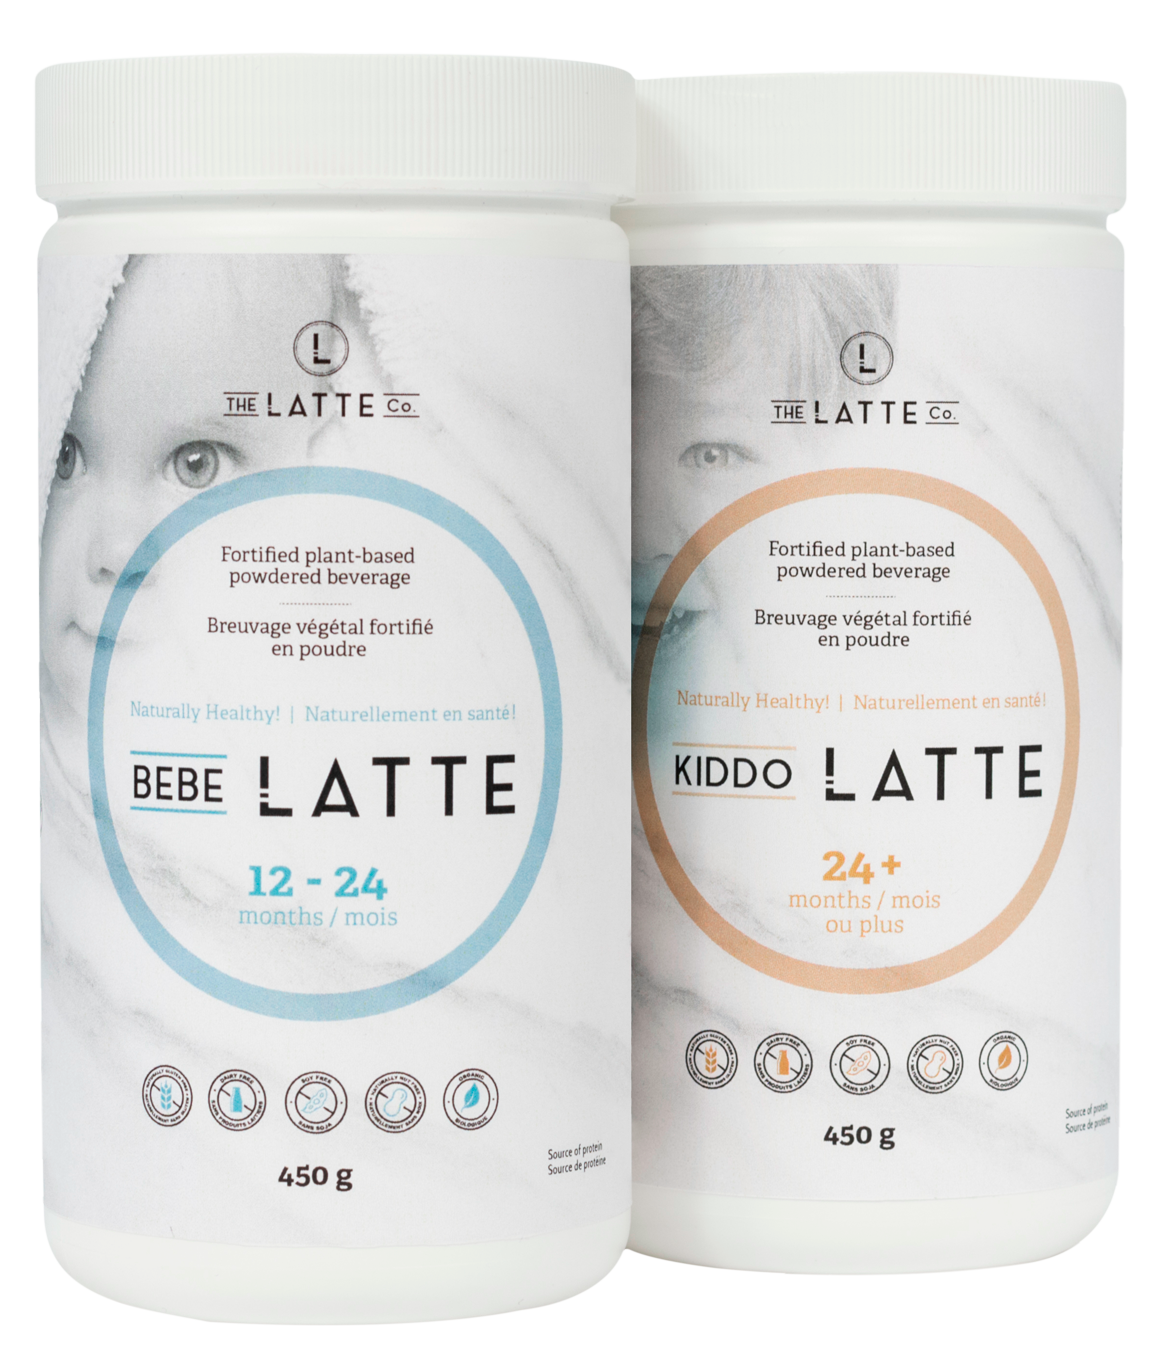 The Latte Co. Bottles